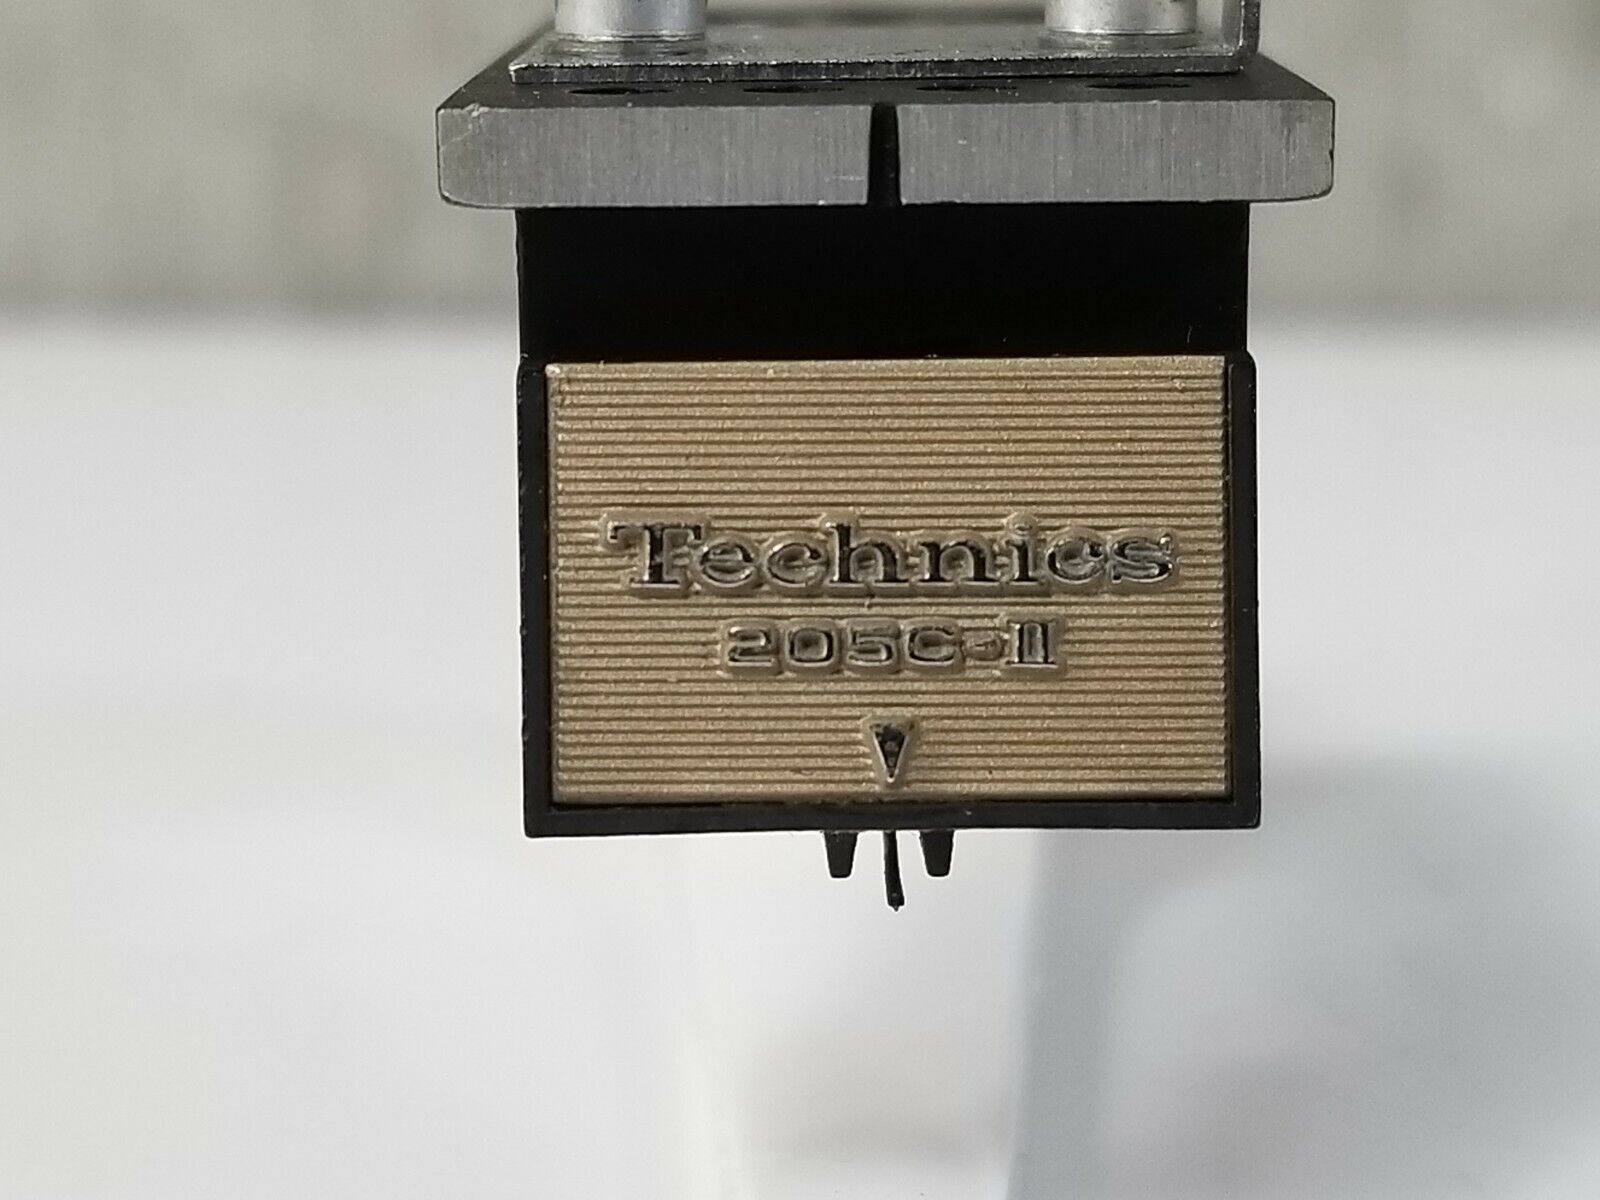 Technics EPC-205C-II Cartridge with Grace Head shell in VG Condition